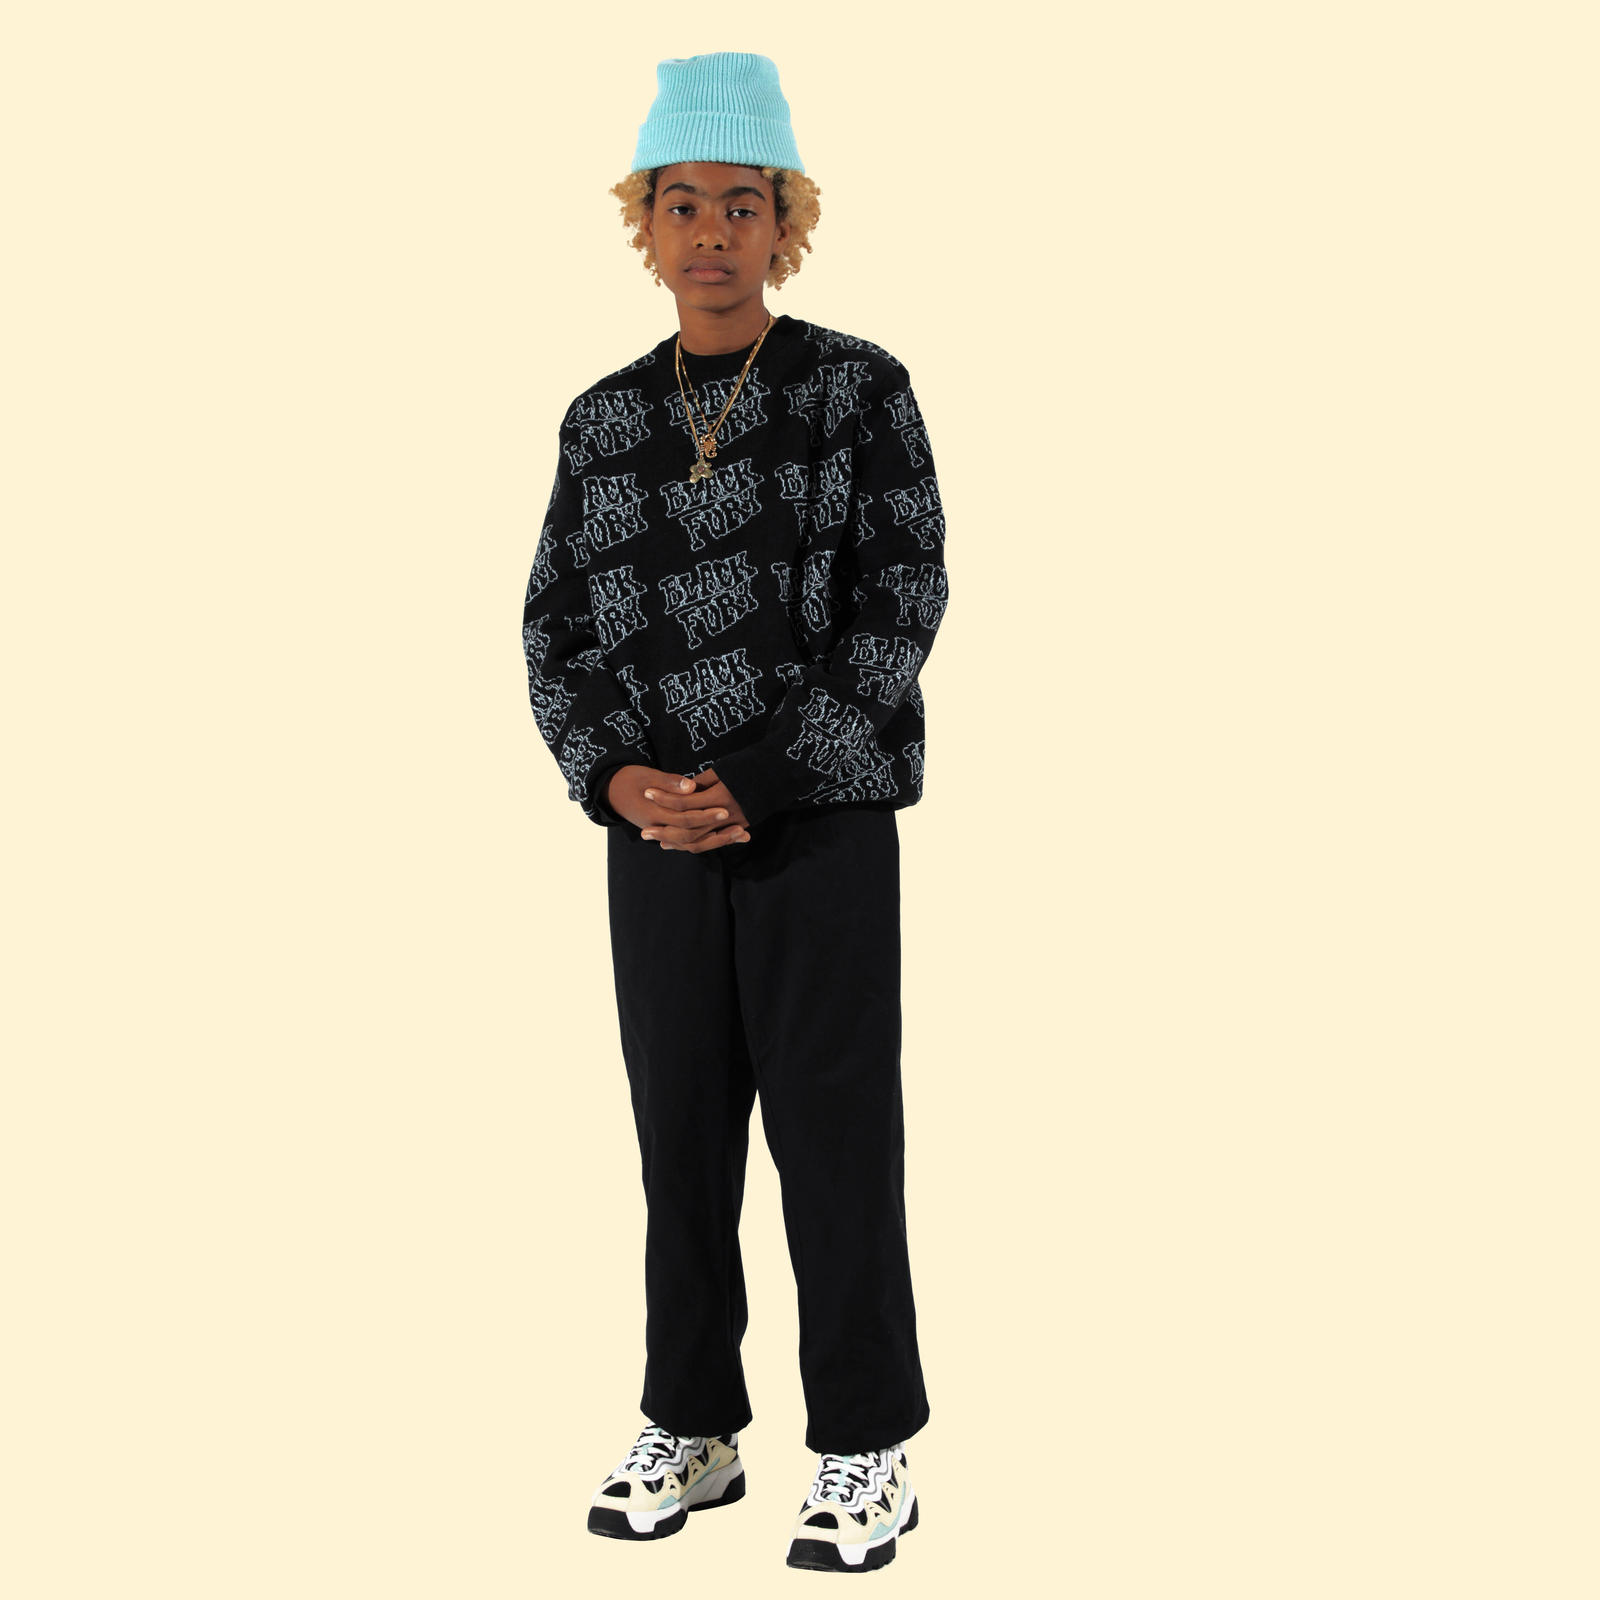 Converse X Tyler The Creator Golf Le Fleur Gianno Nike News